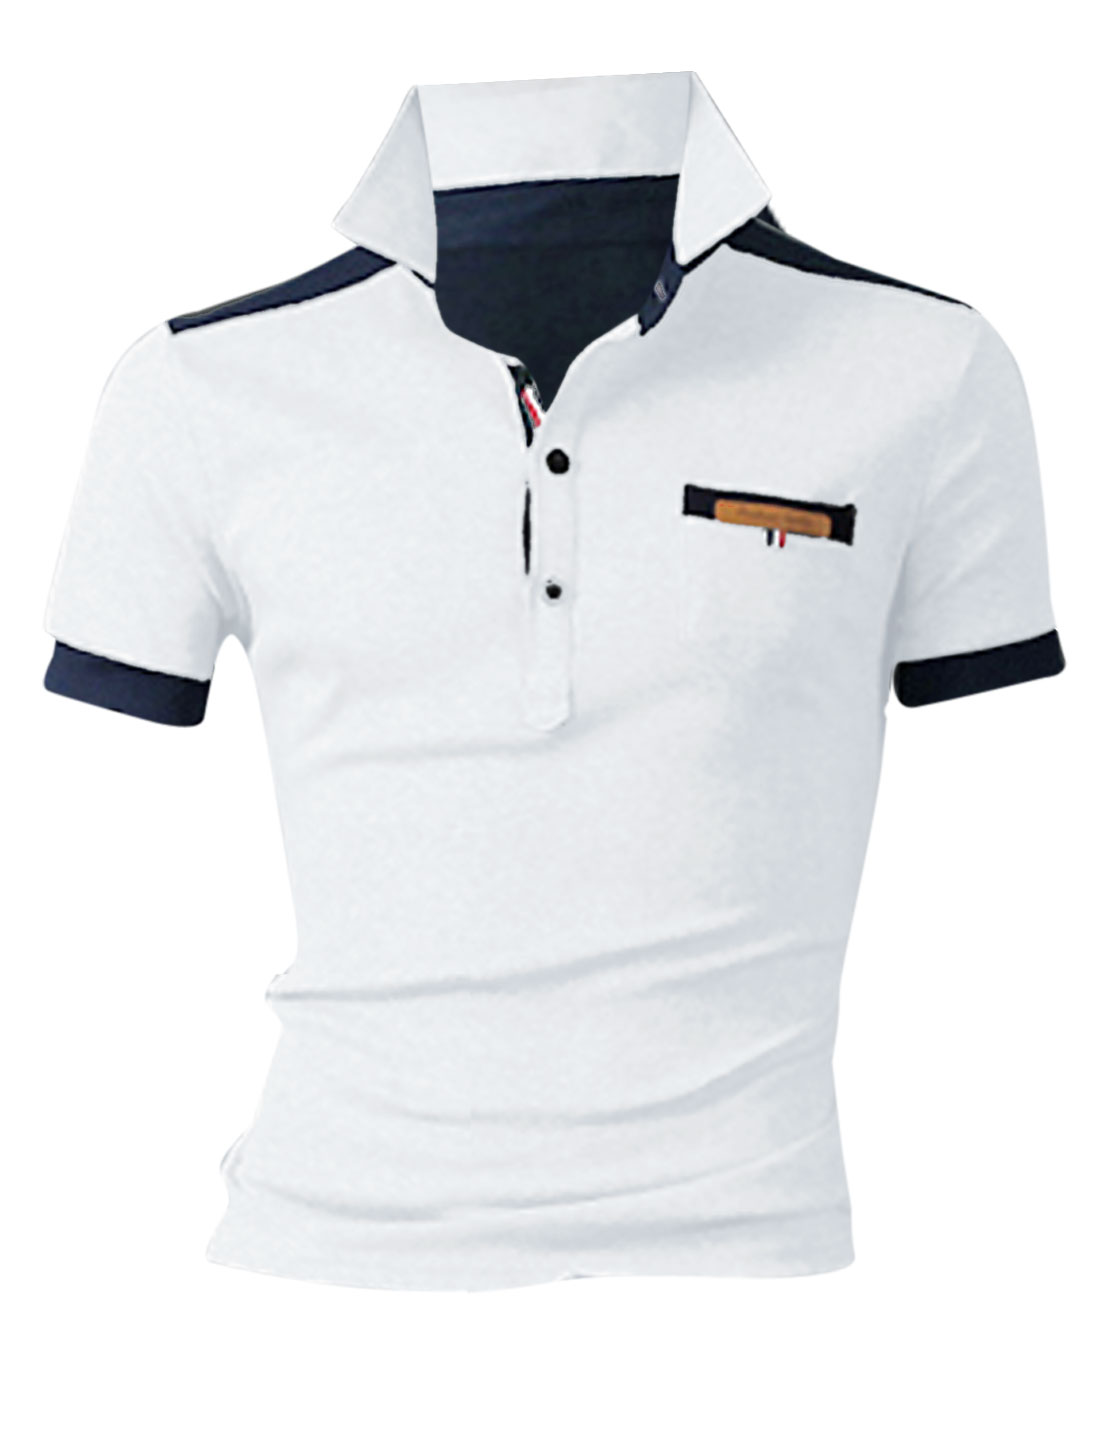 Men Convertible Collar Short Sleeve Leisure Polo Shirt White M